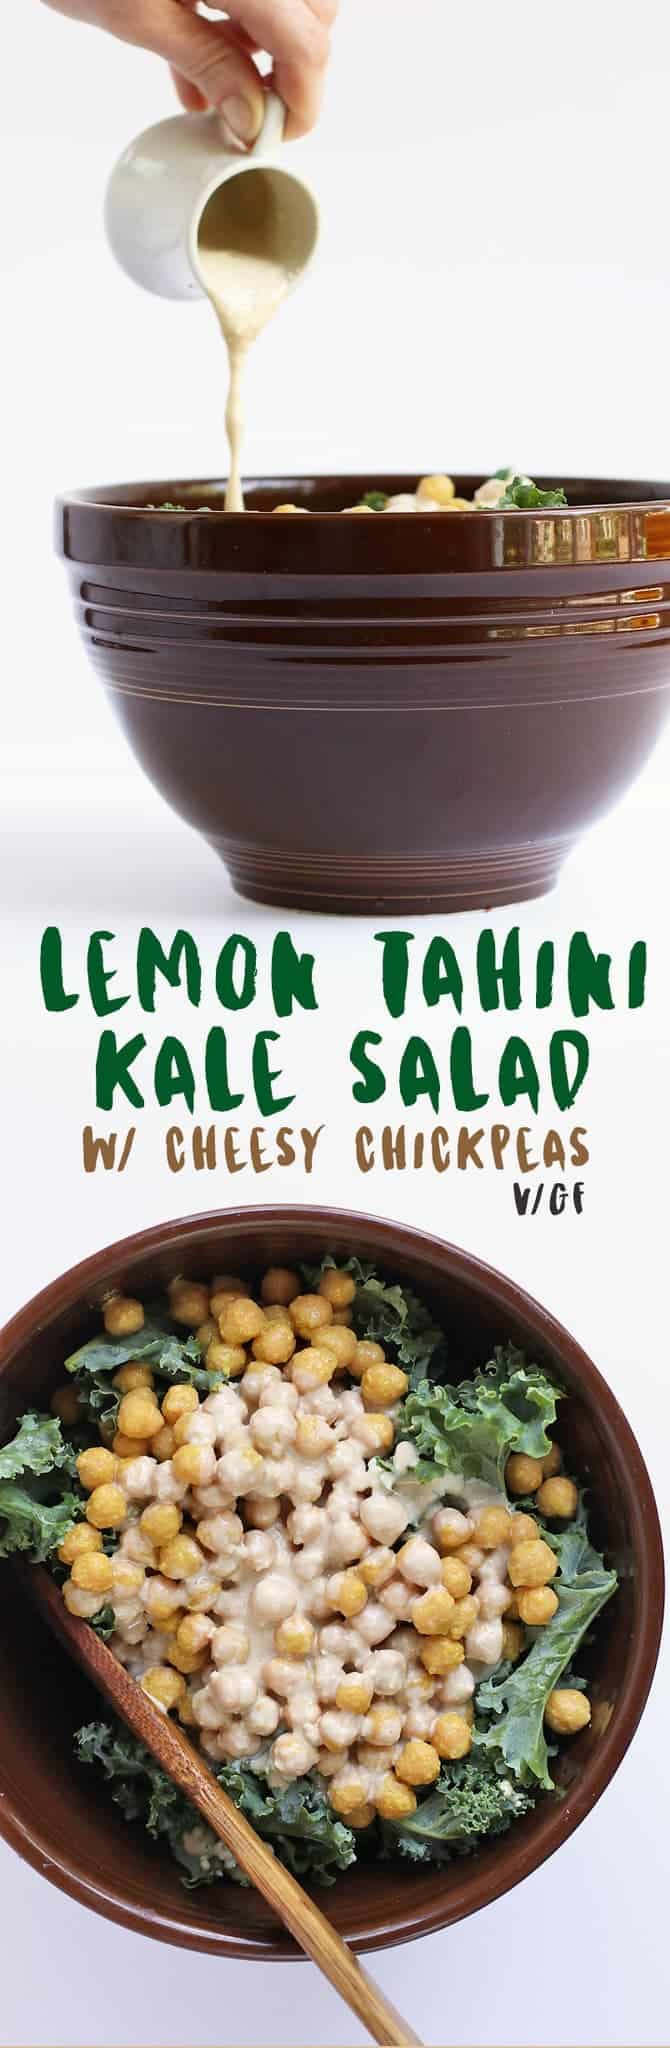 This vegan Lemon Tahini Kale Salad with cheesy chickpeas with the perfect side for all your summer meals.